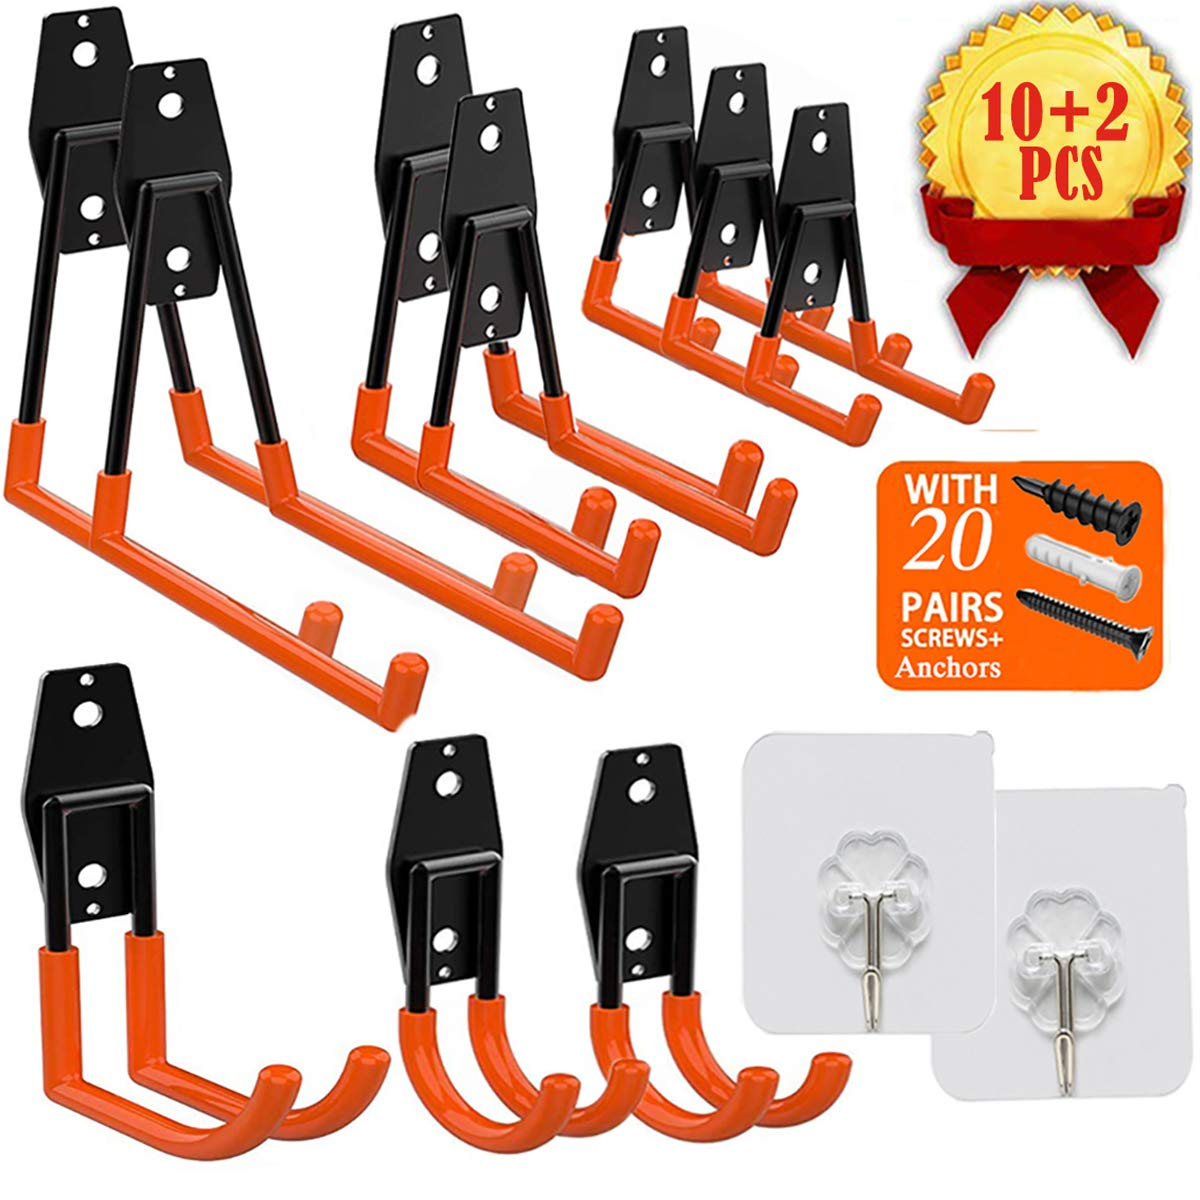 Garage Storage Utility Hooks, UNIHAO Tool Hangers Steel Heavy Duty Hooks Wall Mount Tool Holder Garden Organizer for Hanging Power Tools, Ladders, Ropes, Bikes Hanger, 10 Pcs with 2 Pcs Wall Hooks by UNIHAO